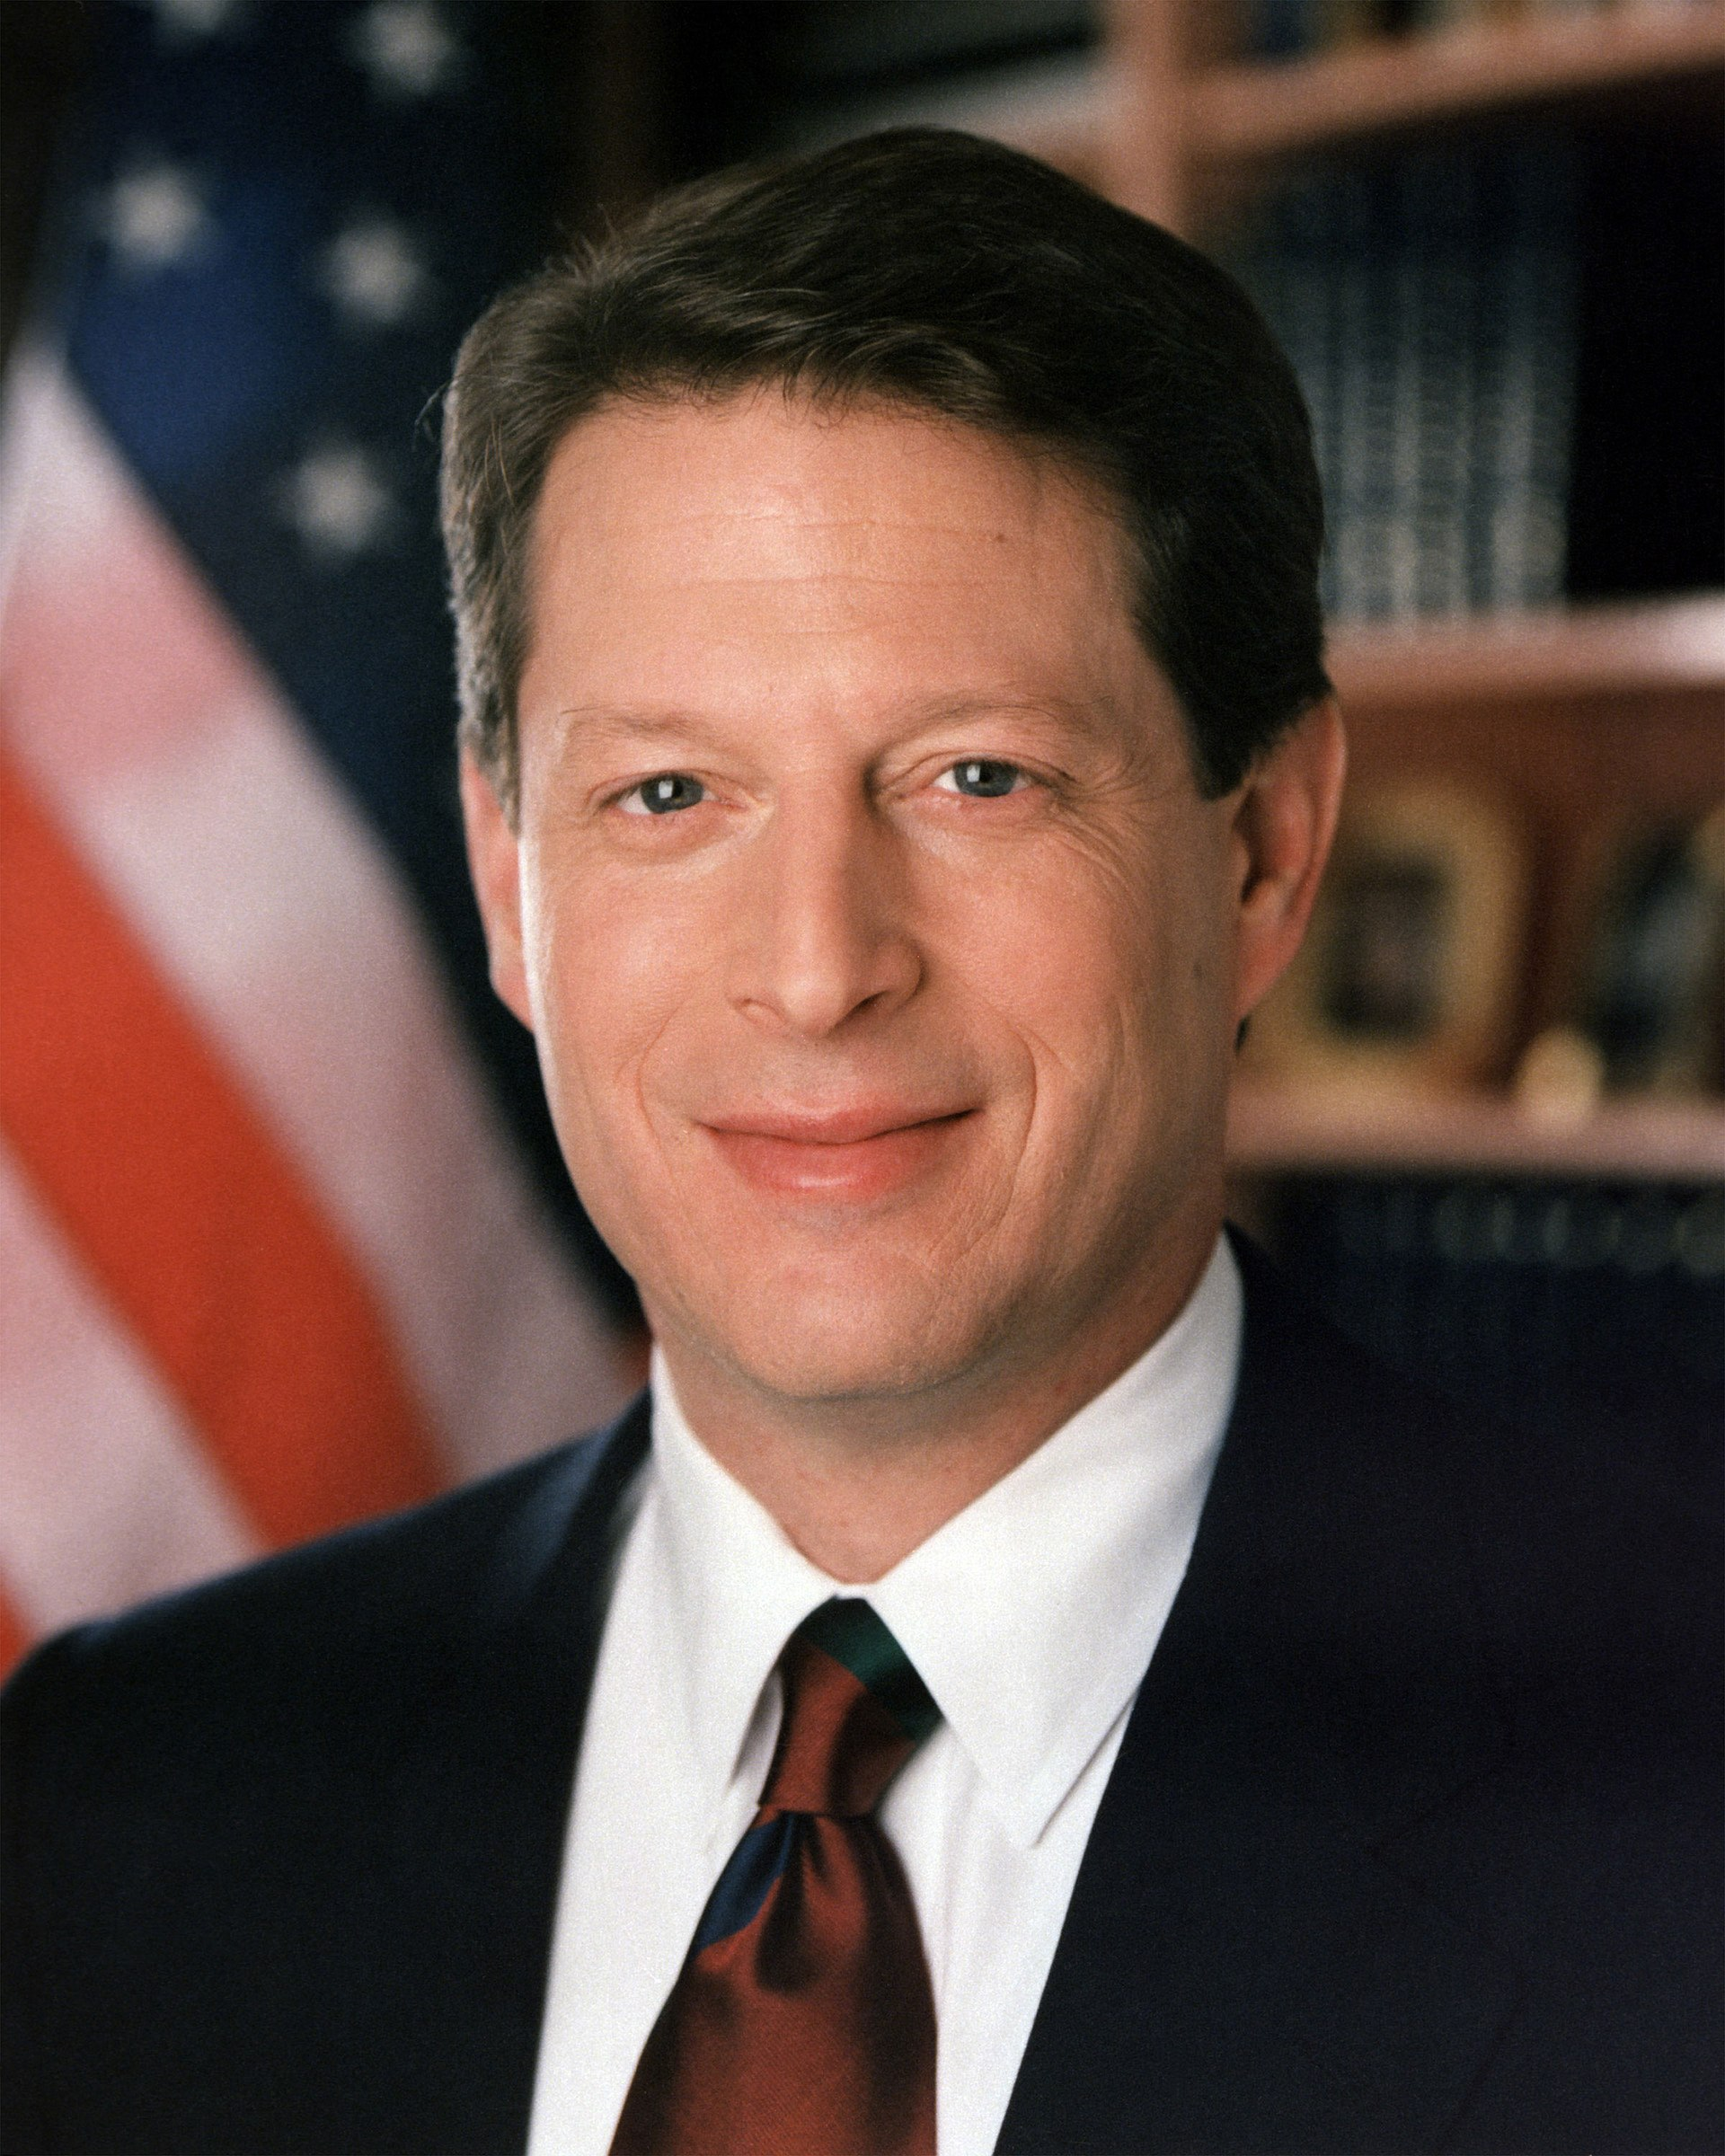 Al Gore Official Portrait